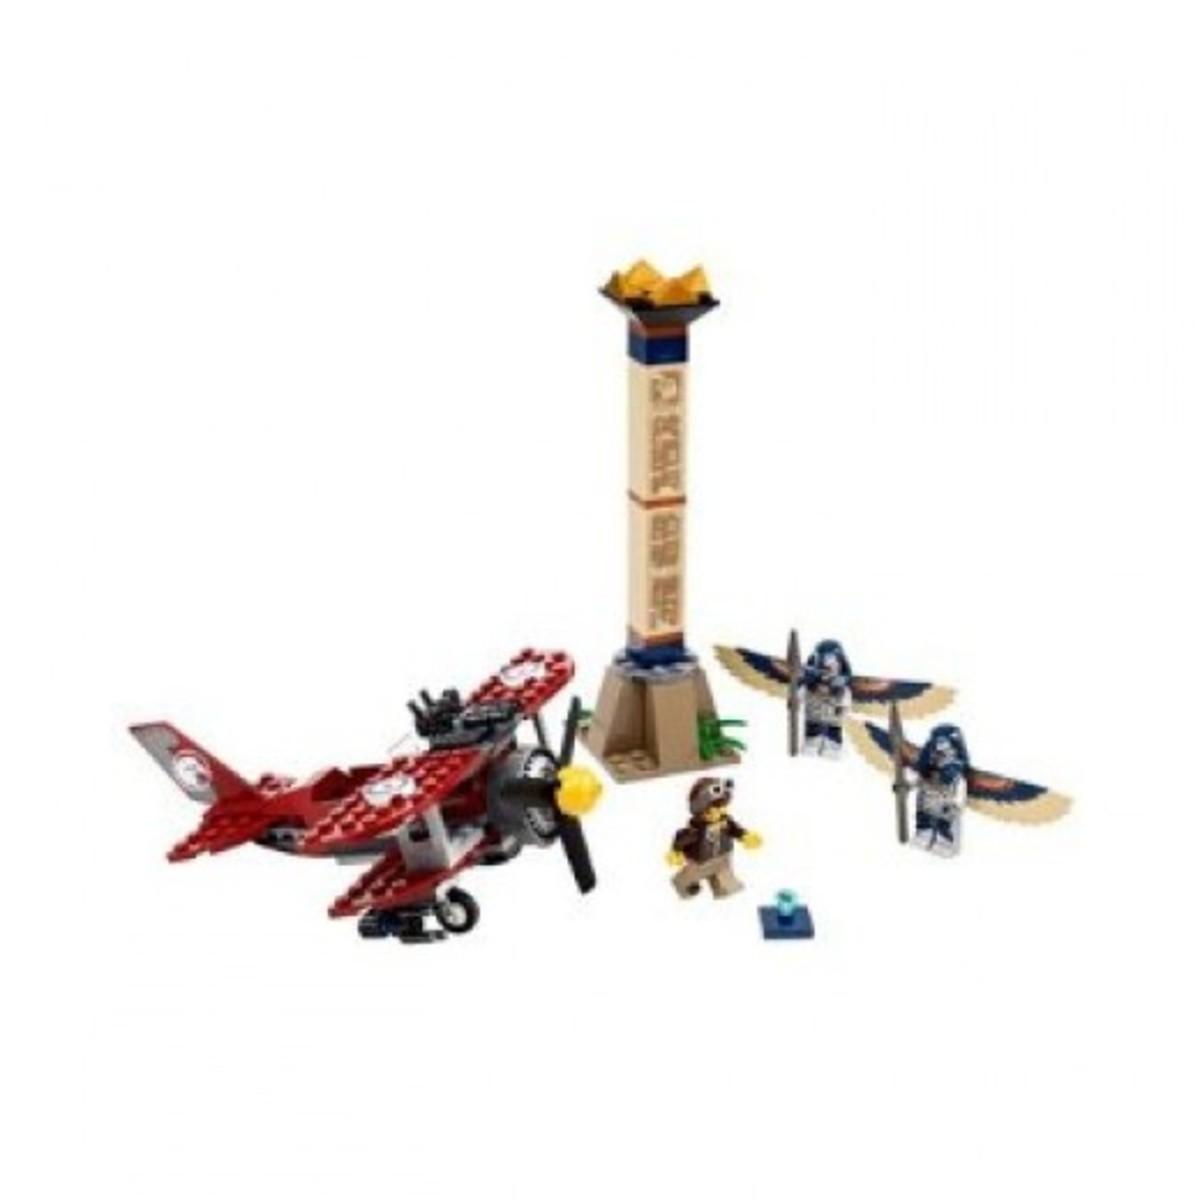 LEGO Pharaoh's Quest Flying Mummy Attack 7303 Assembled